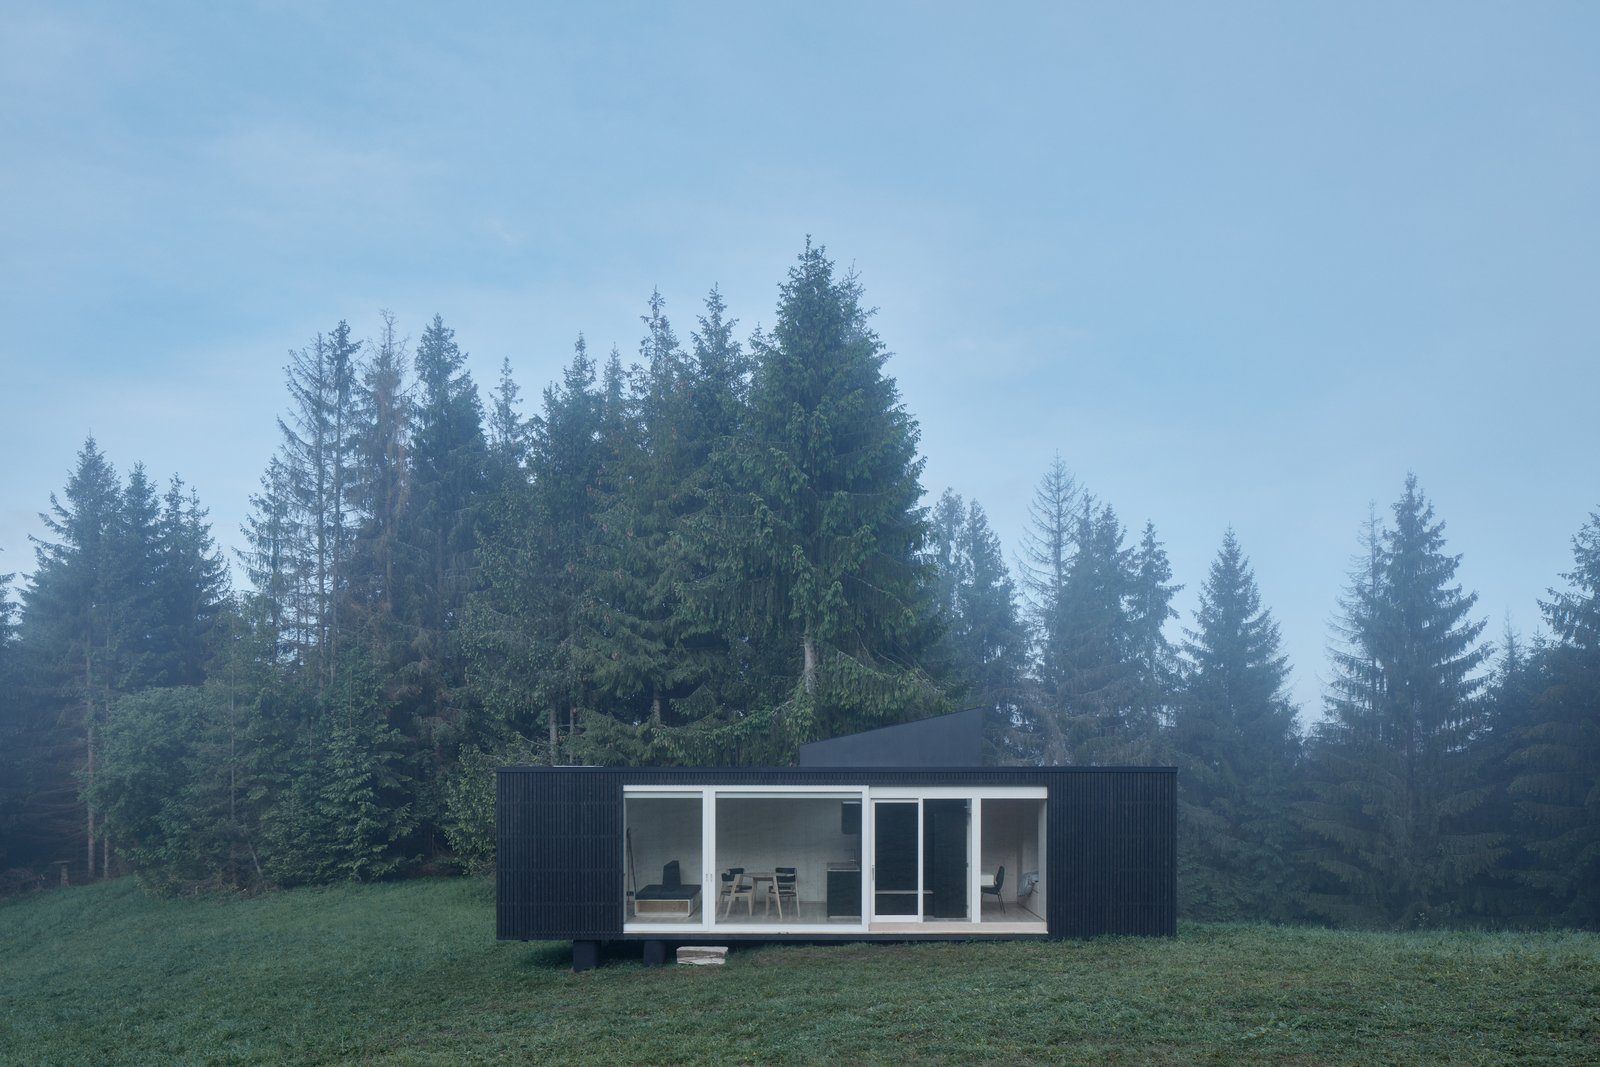 Articles about grid prefab cabin completely tune surroundings on Dwell.com